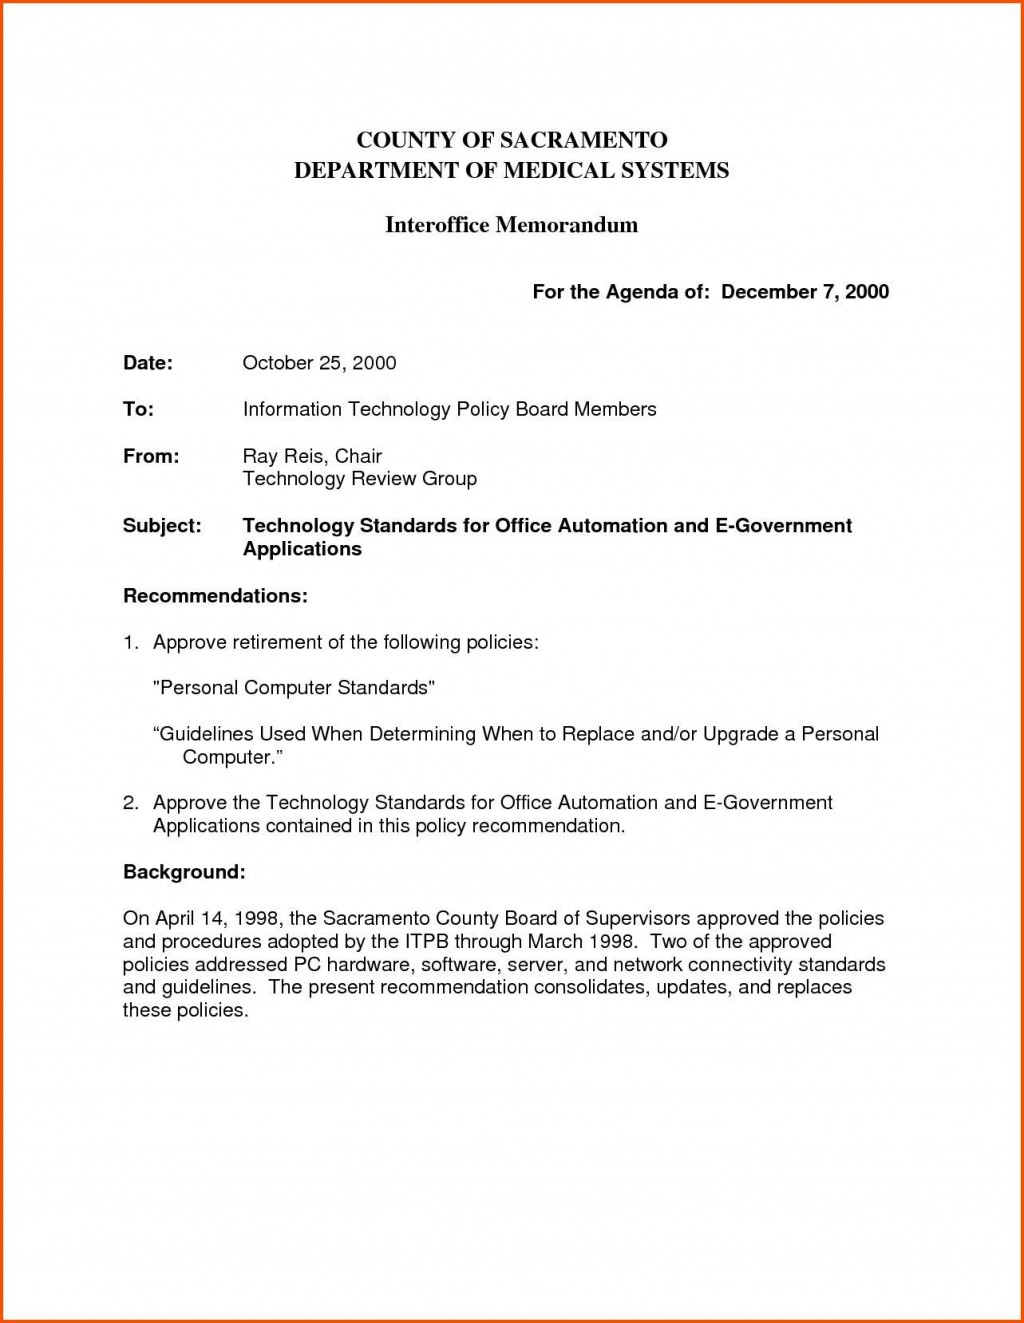 002 Top Memo Template For Word Picture  Free Cash Sample 2013Large